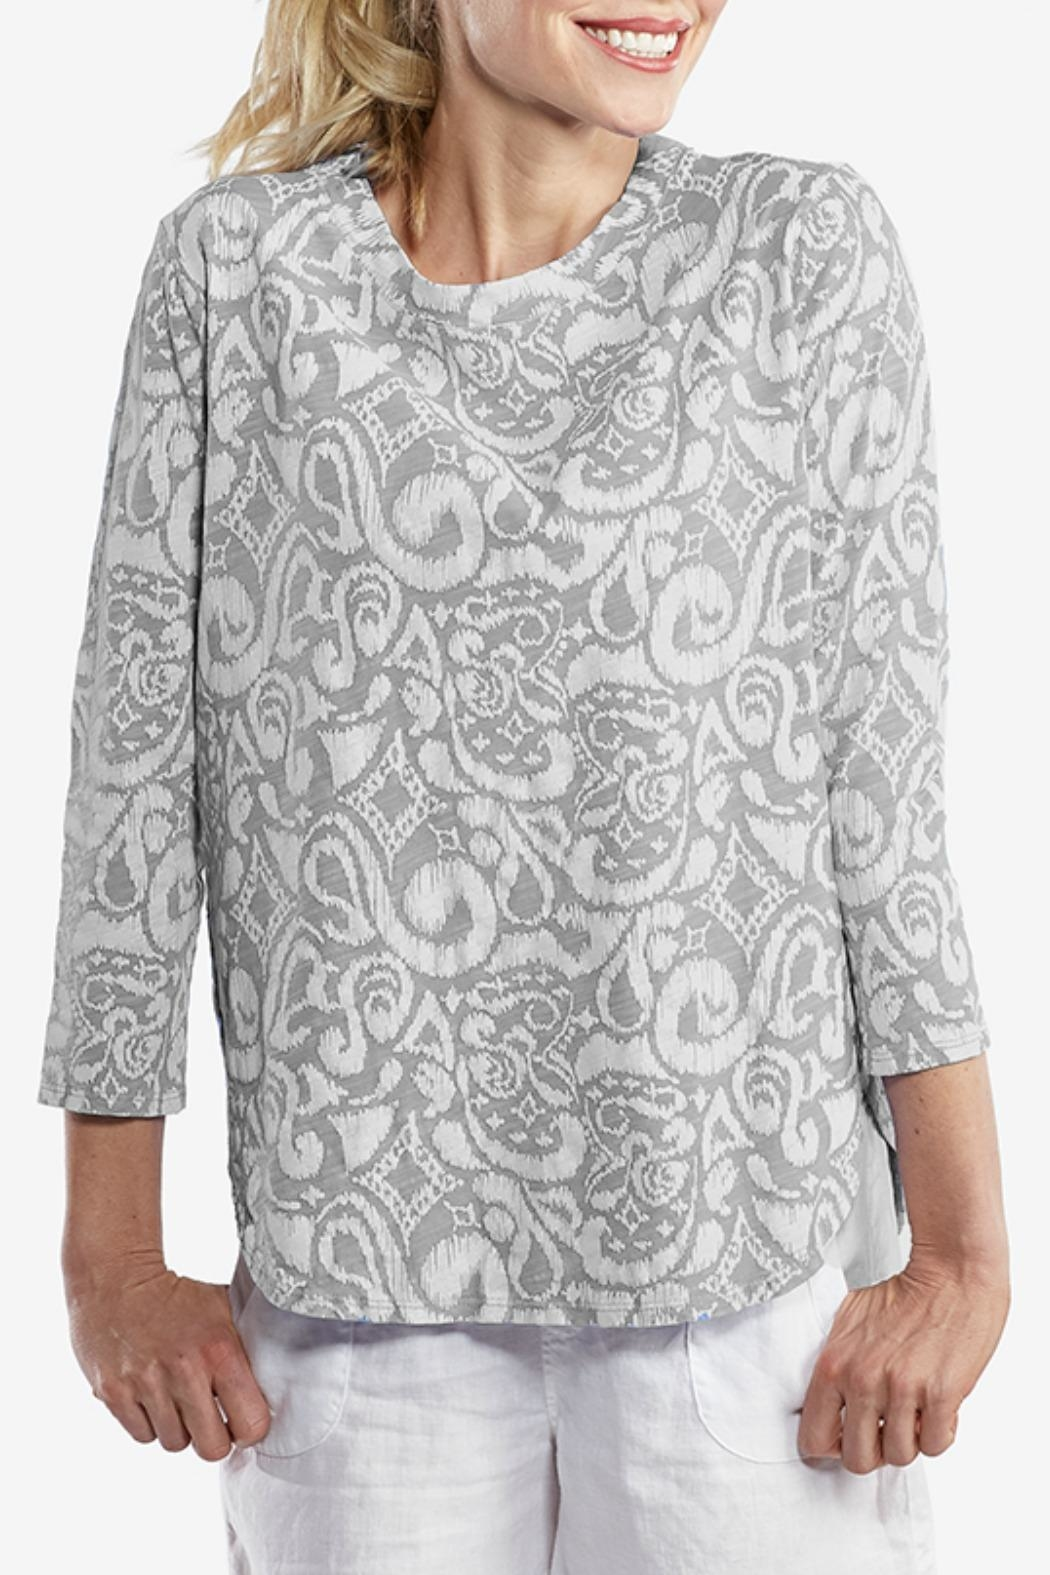 Fresh Produce Tropical Print Top - Main Image